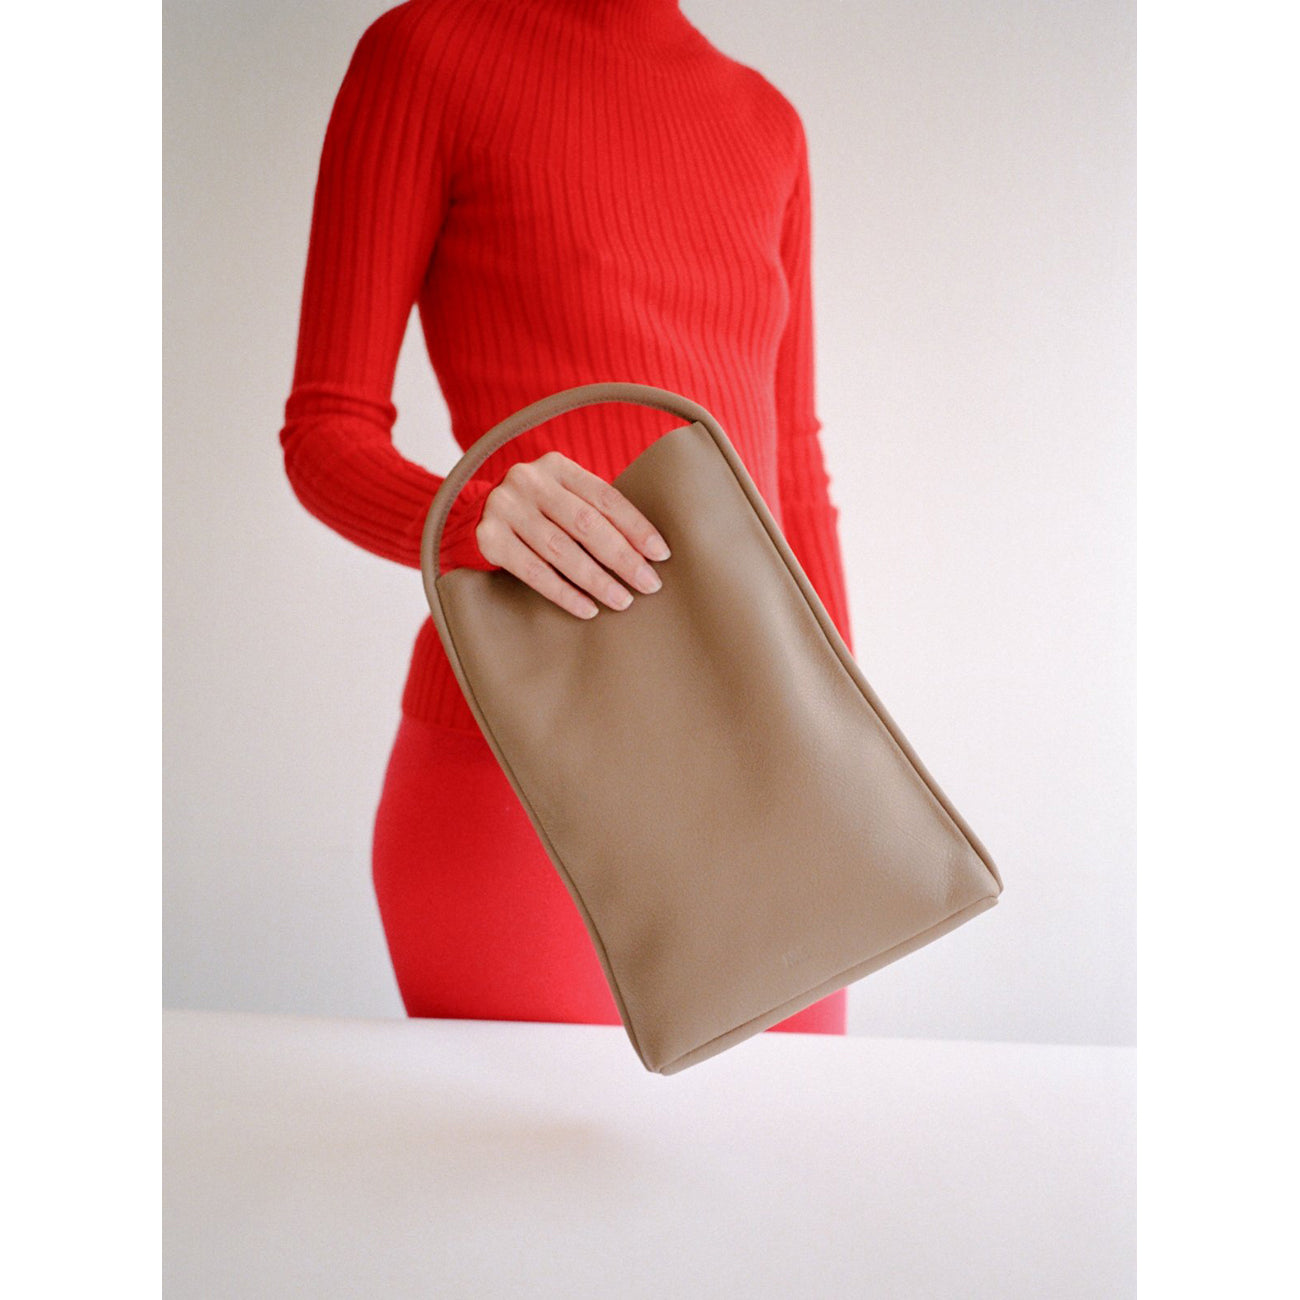 Are Studio Mano Clutch in Dust